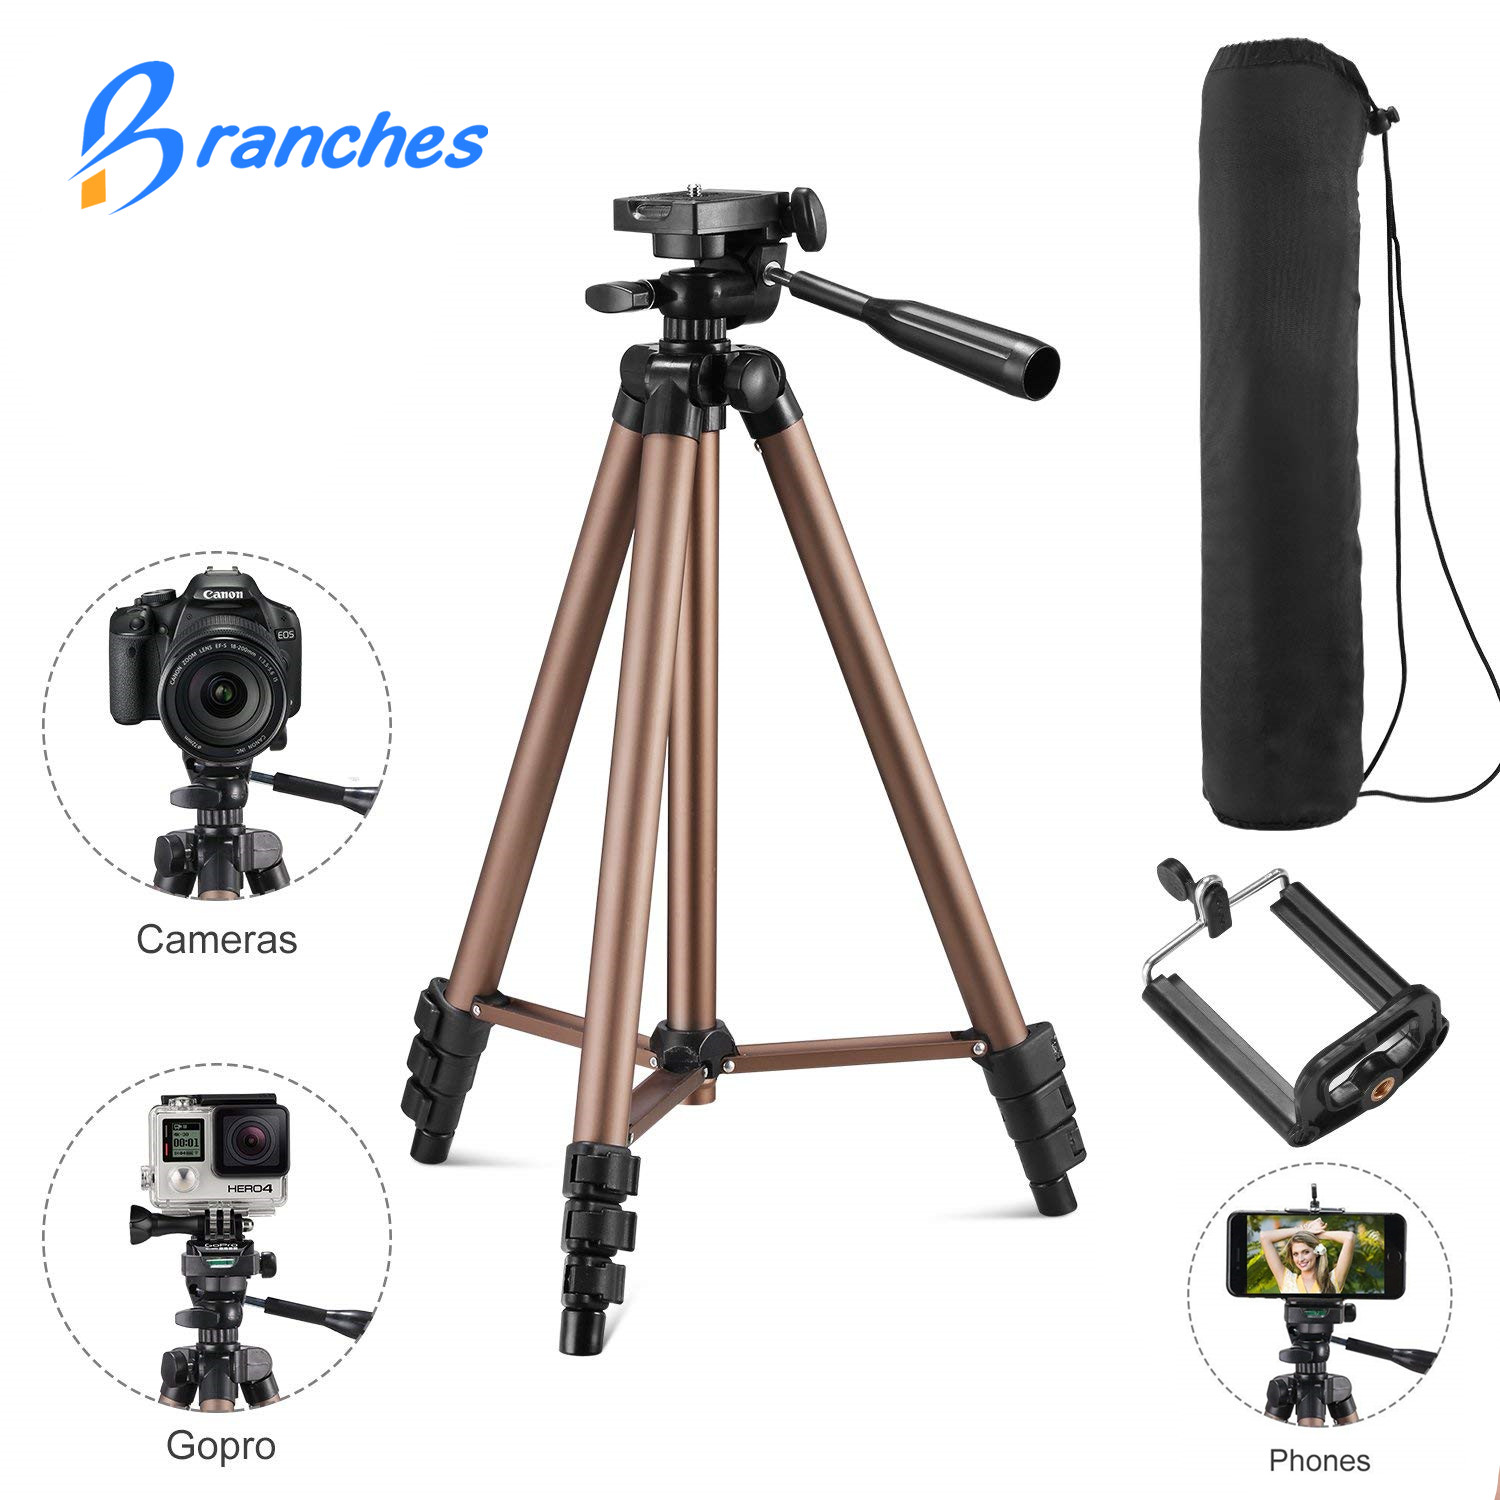 Universal Portable Tripod Lightweight Camera Tripod For Mobile Phone Professional Tripod For Canon Sony Nikon Camera SmartPhone